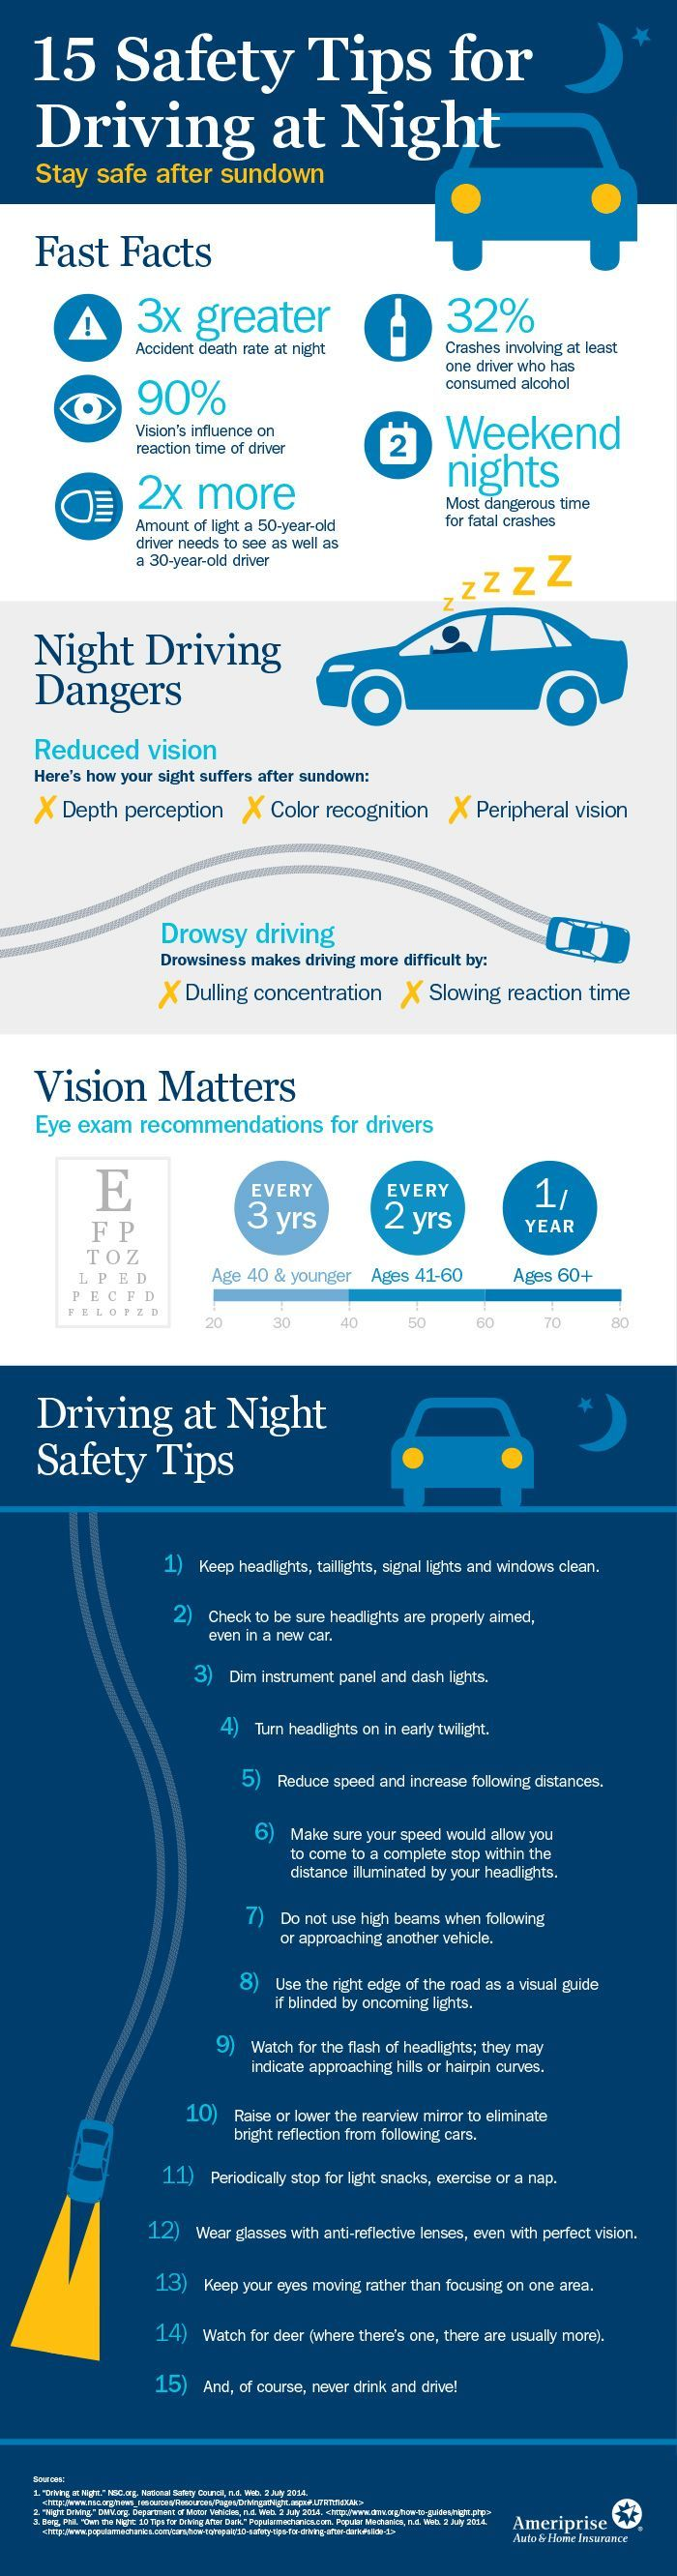 Safety tips for driving at night #homesafetytips